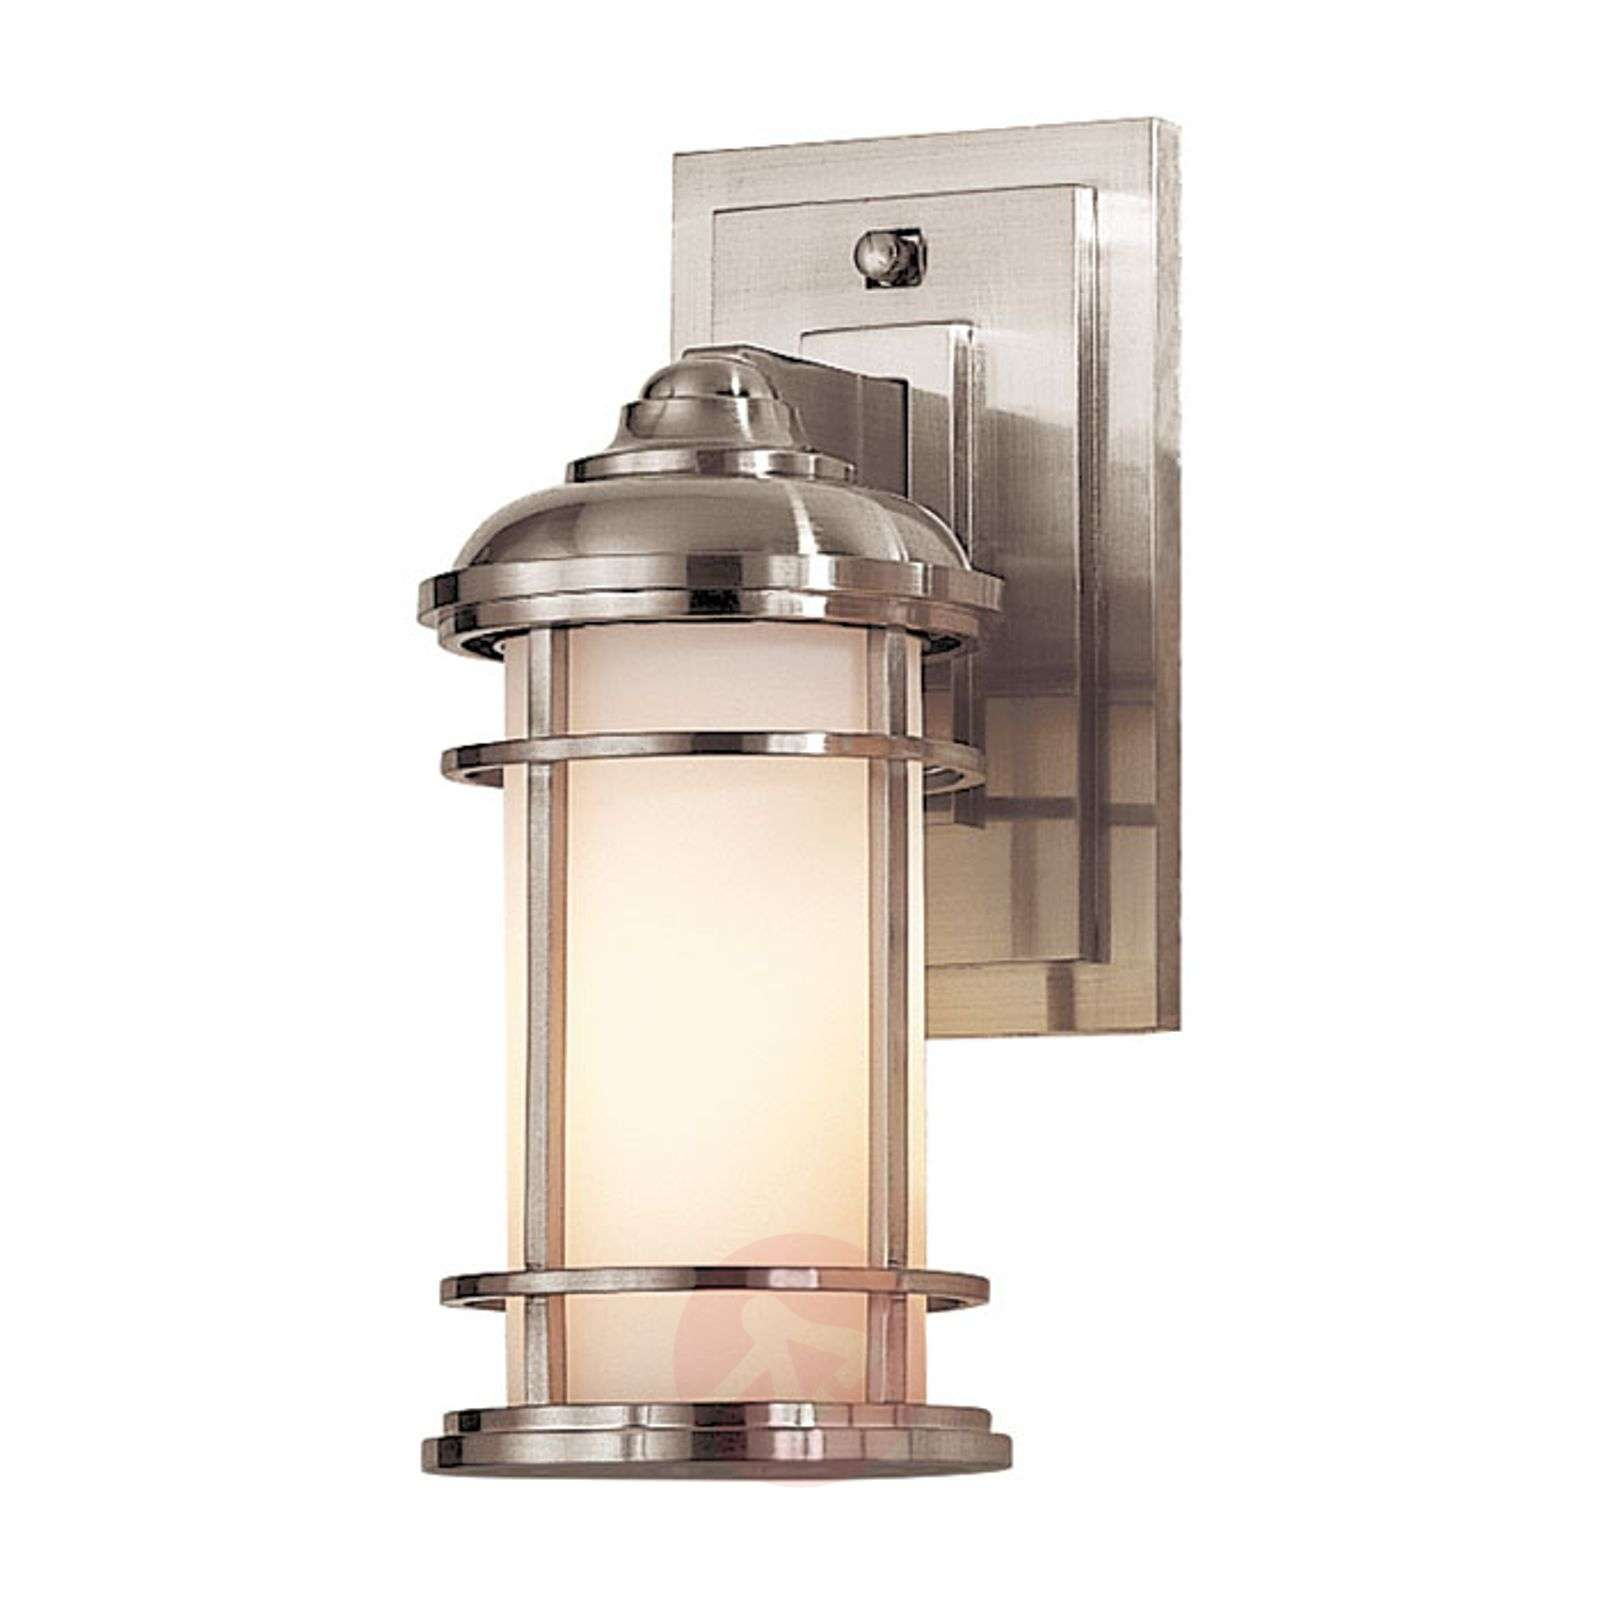 Lighthouse outdoor wall lamp, brushed steel-3048881-01